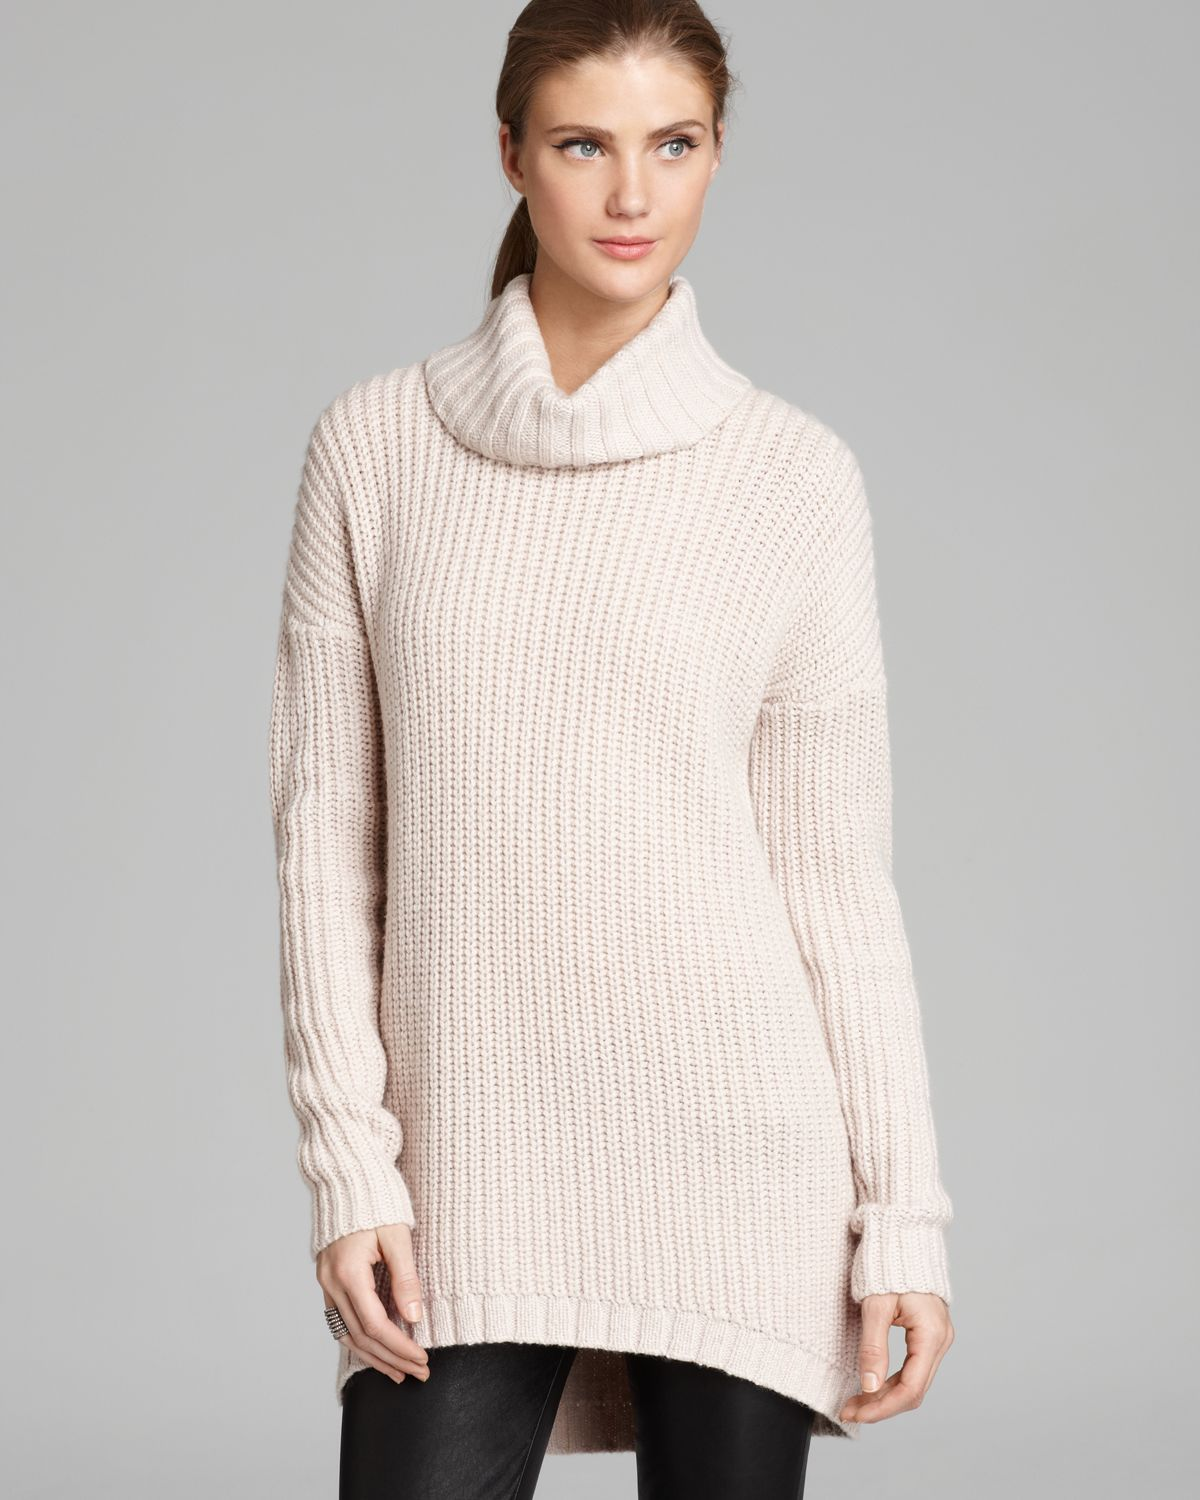 Soft Joie Sweater - Alex Turtleneck | Bloomingdale's